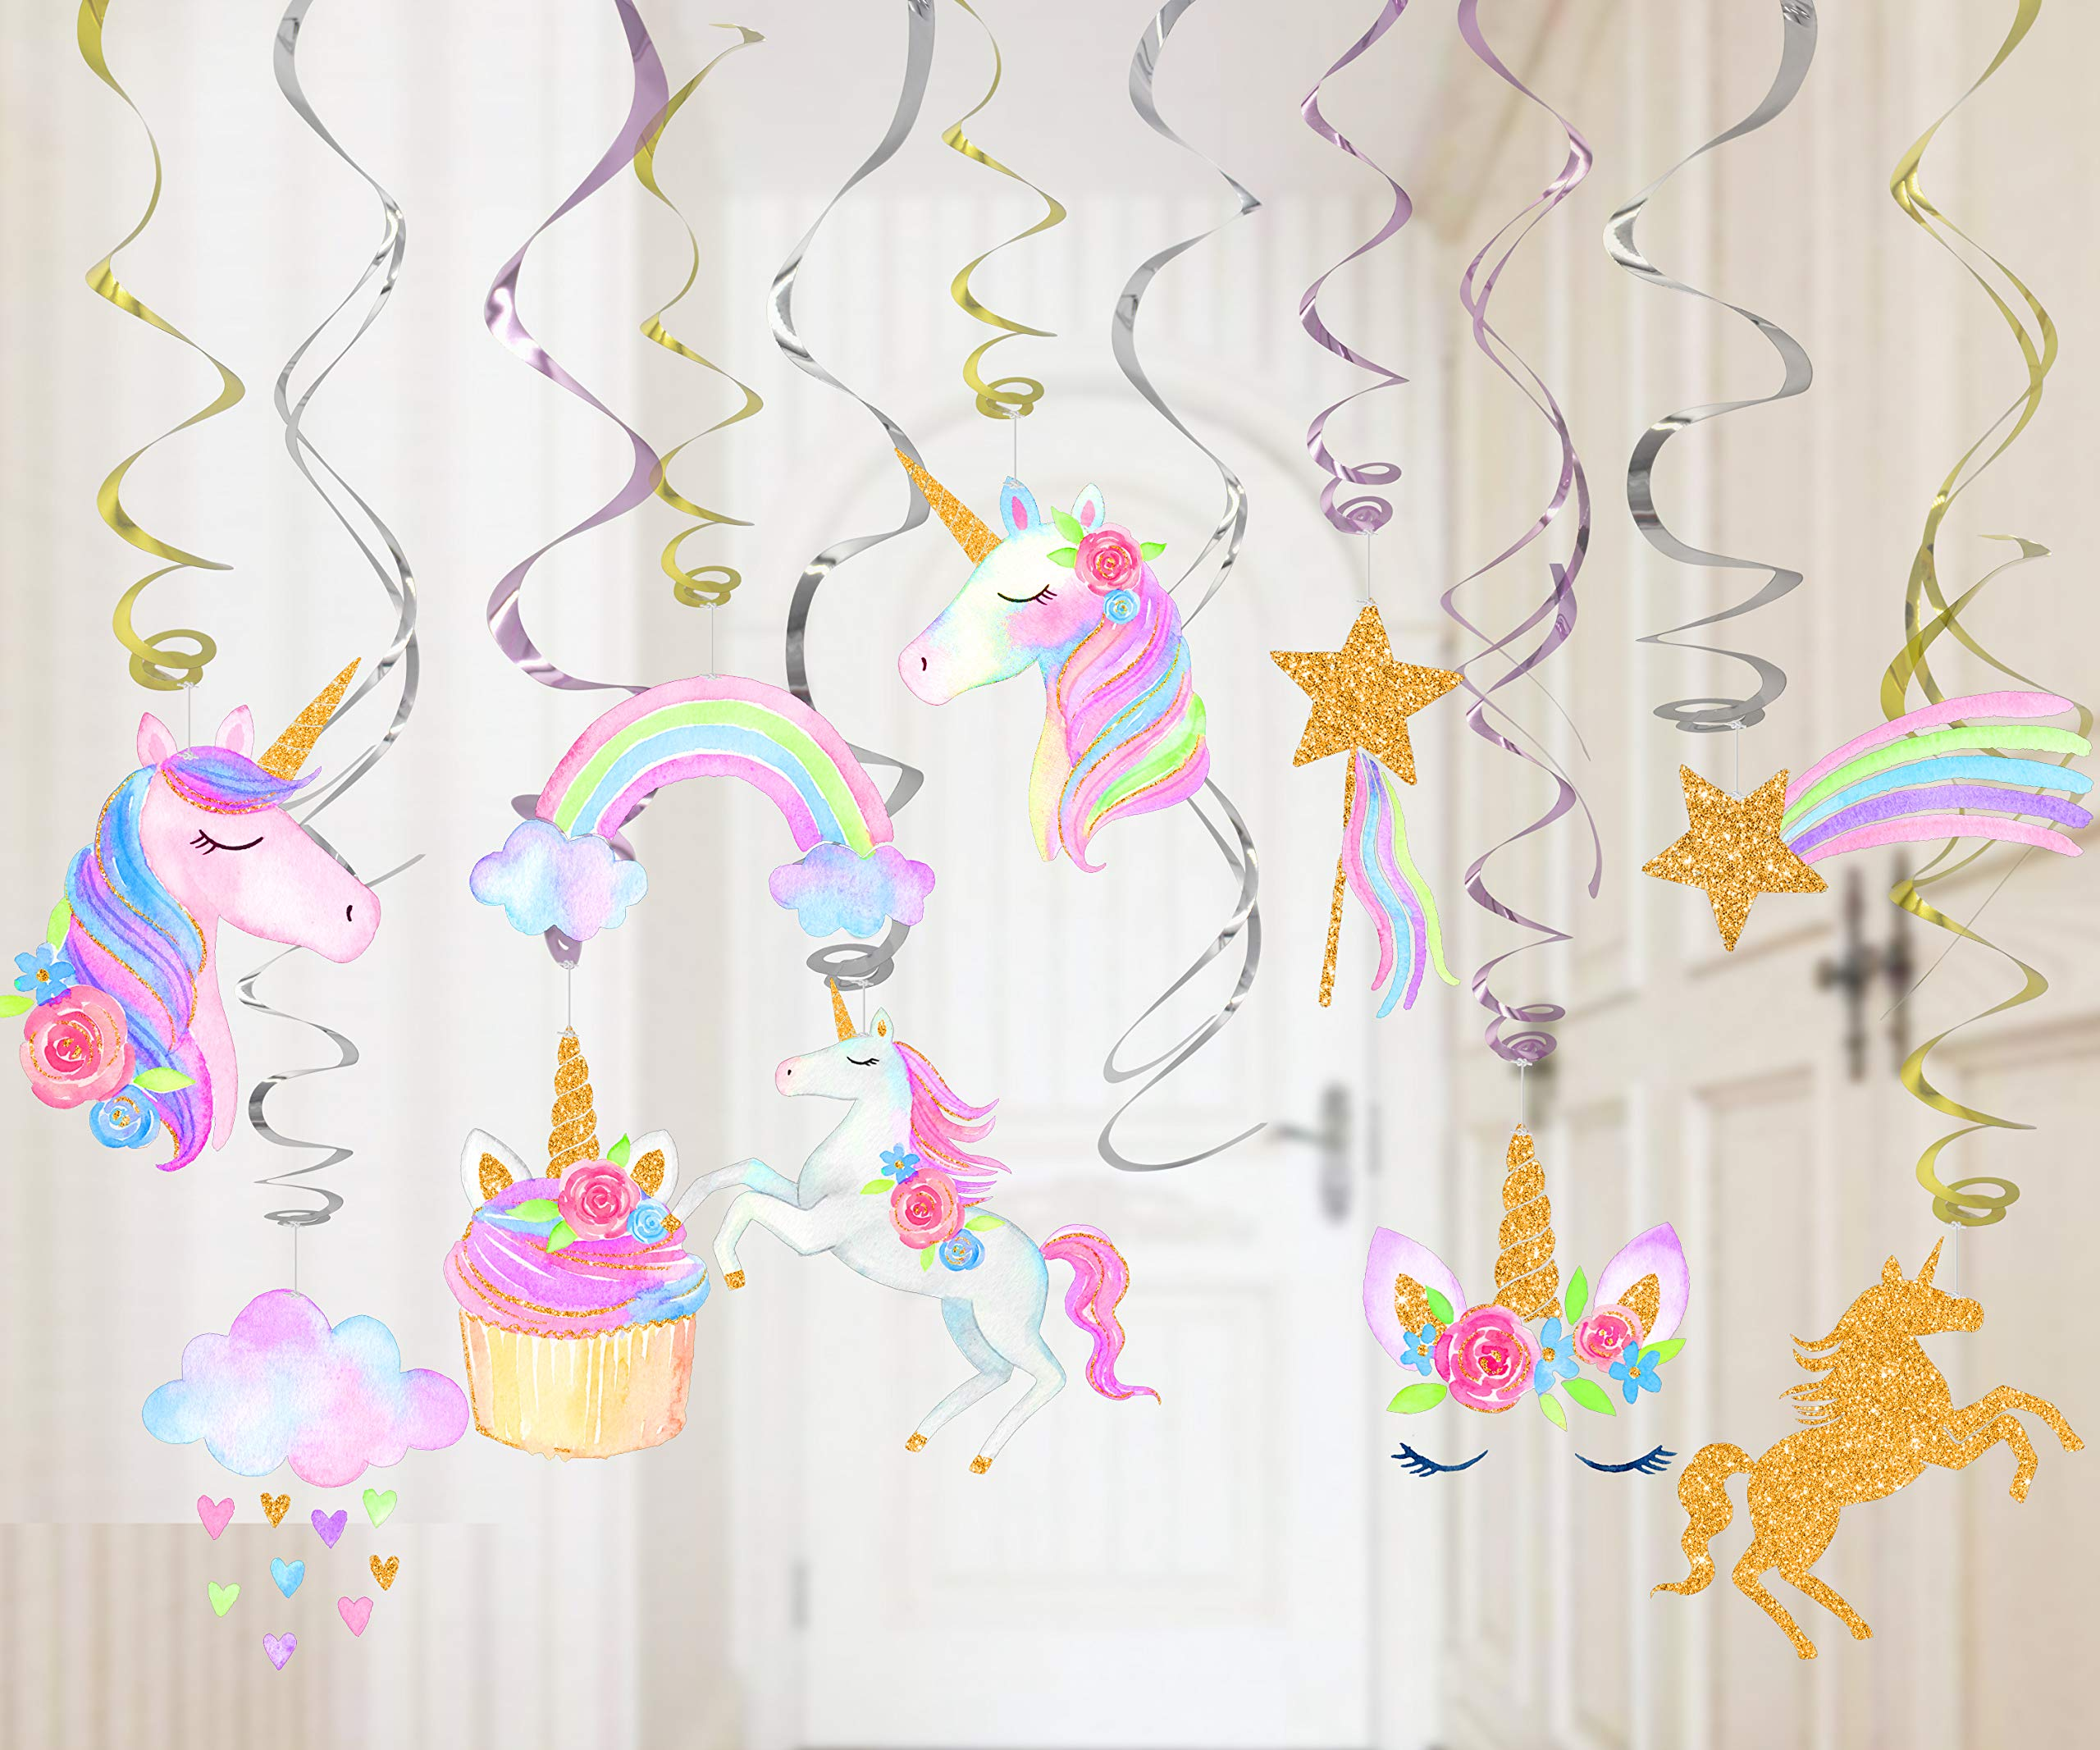 30 Ct Unicorn Hanging Swirl Decorations-Unicorn Party Decorations-Unicorn Birthday Party Supplies 6